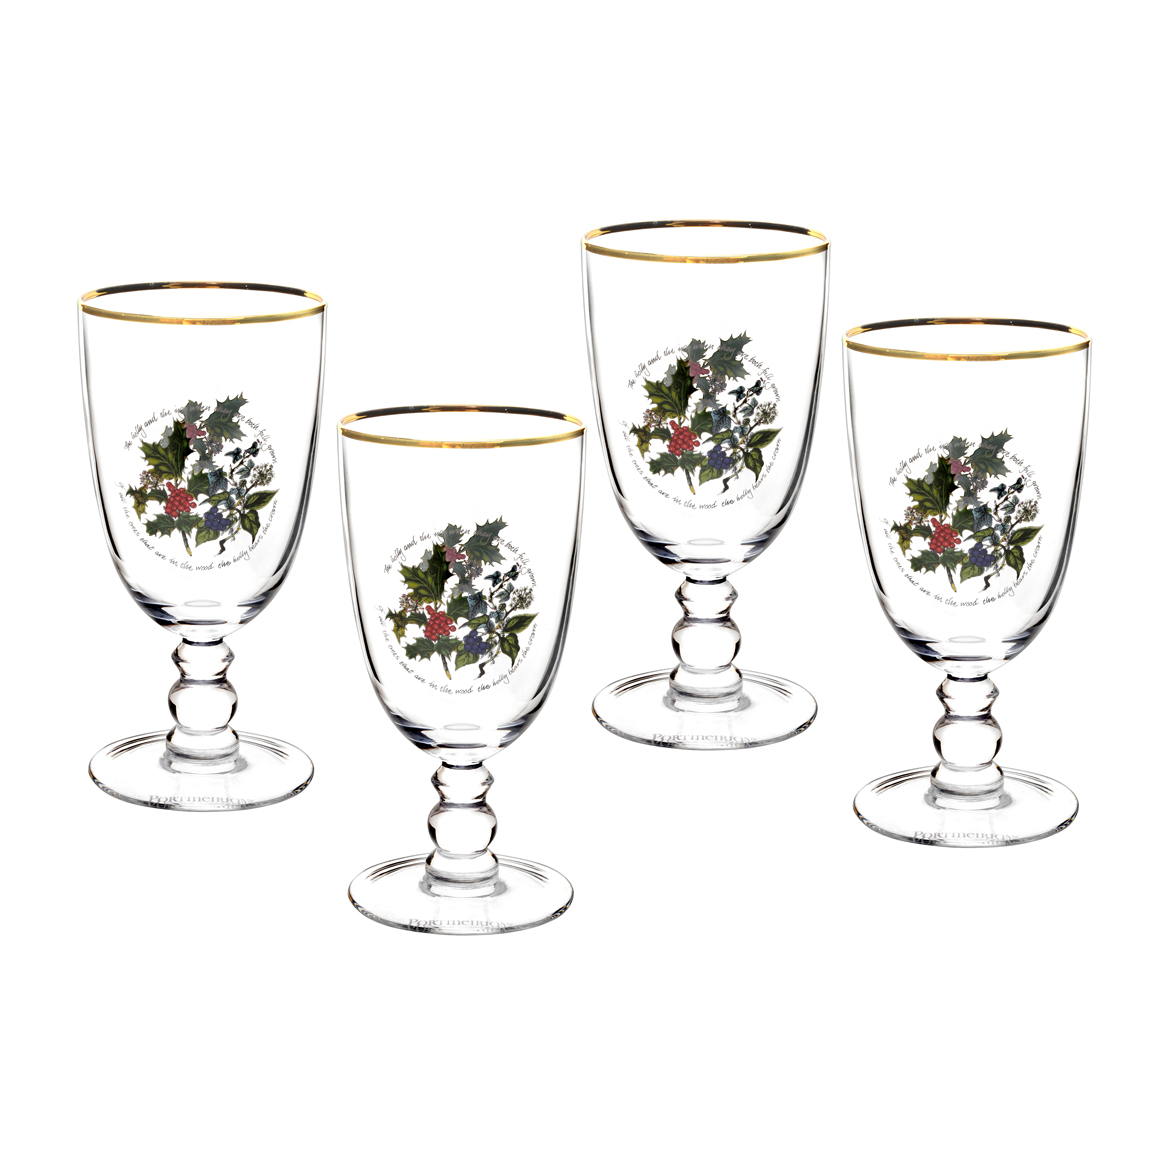 Portmeirion Holly Amp Ivy Set Of 4 Goblets 39 99 You Save